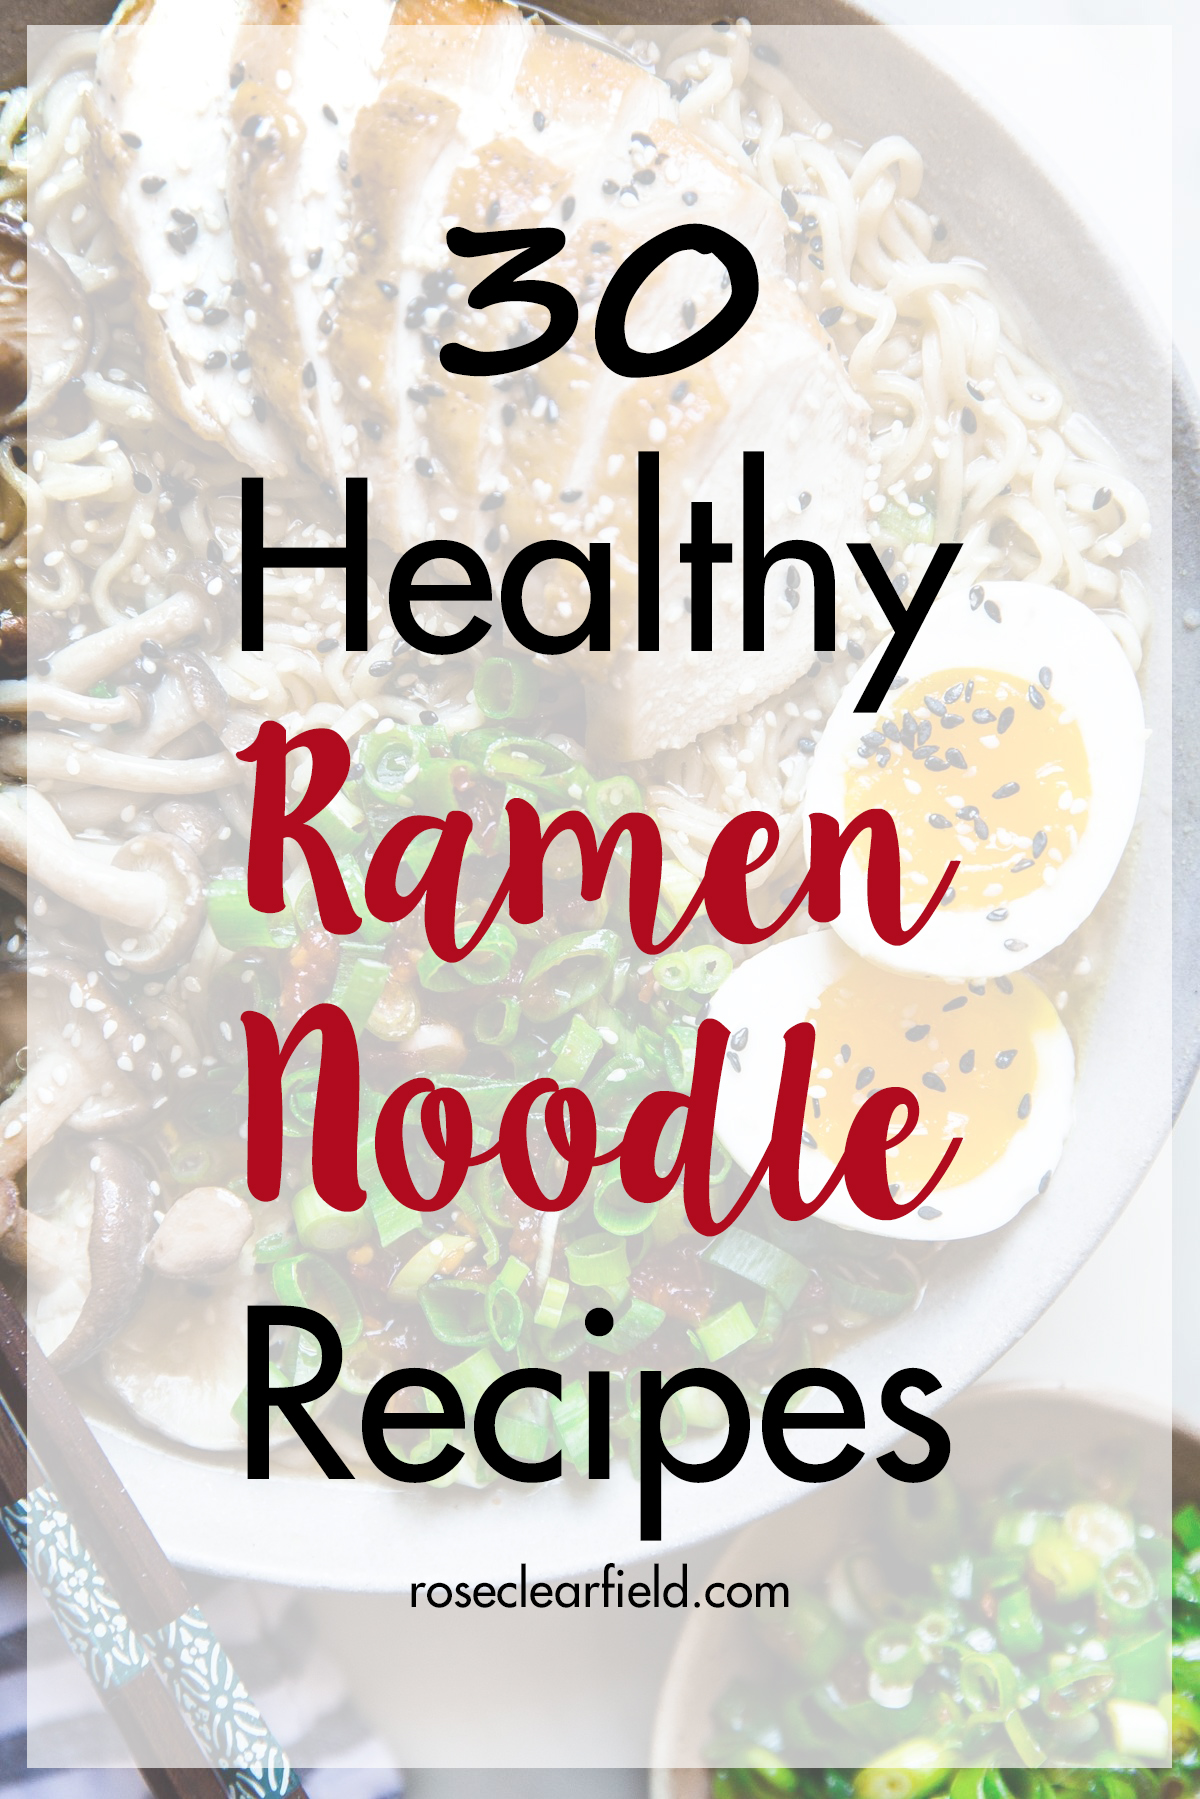 30 Healthy Ramen Noodle Recipes | https://www.roseclearfield.com